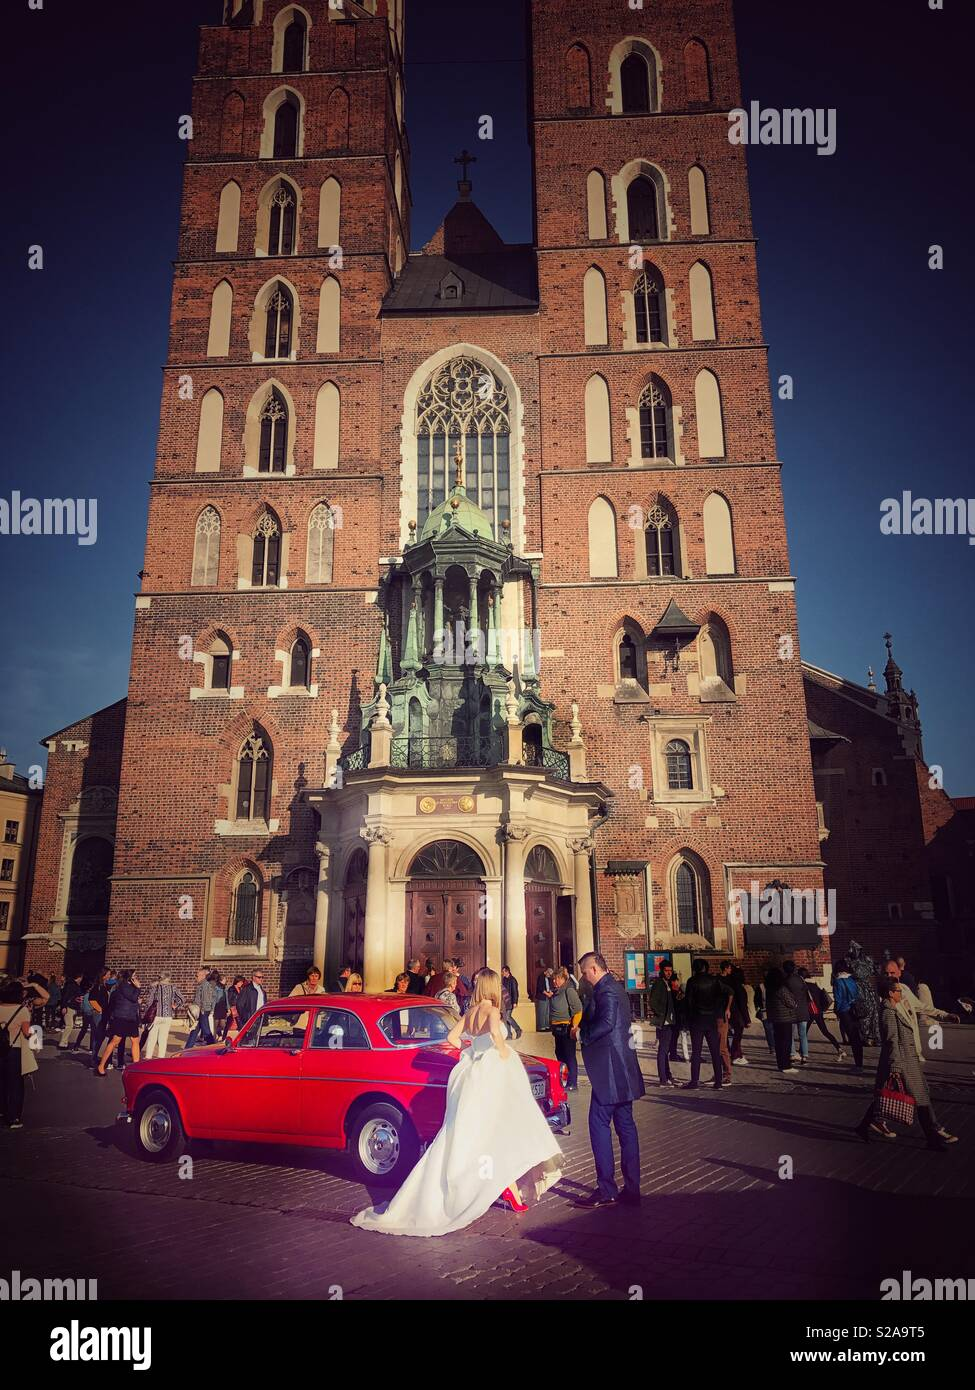 Bride in a white wedding gown and red stiletto shoes and groom in a tuxedo and a classic old red car in front of St. Mary's Basilica in Krakow, Poland - Stock Image